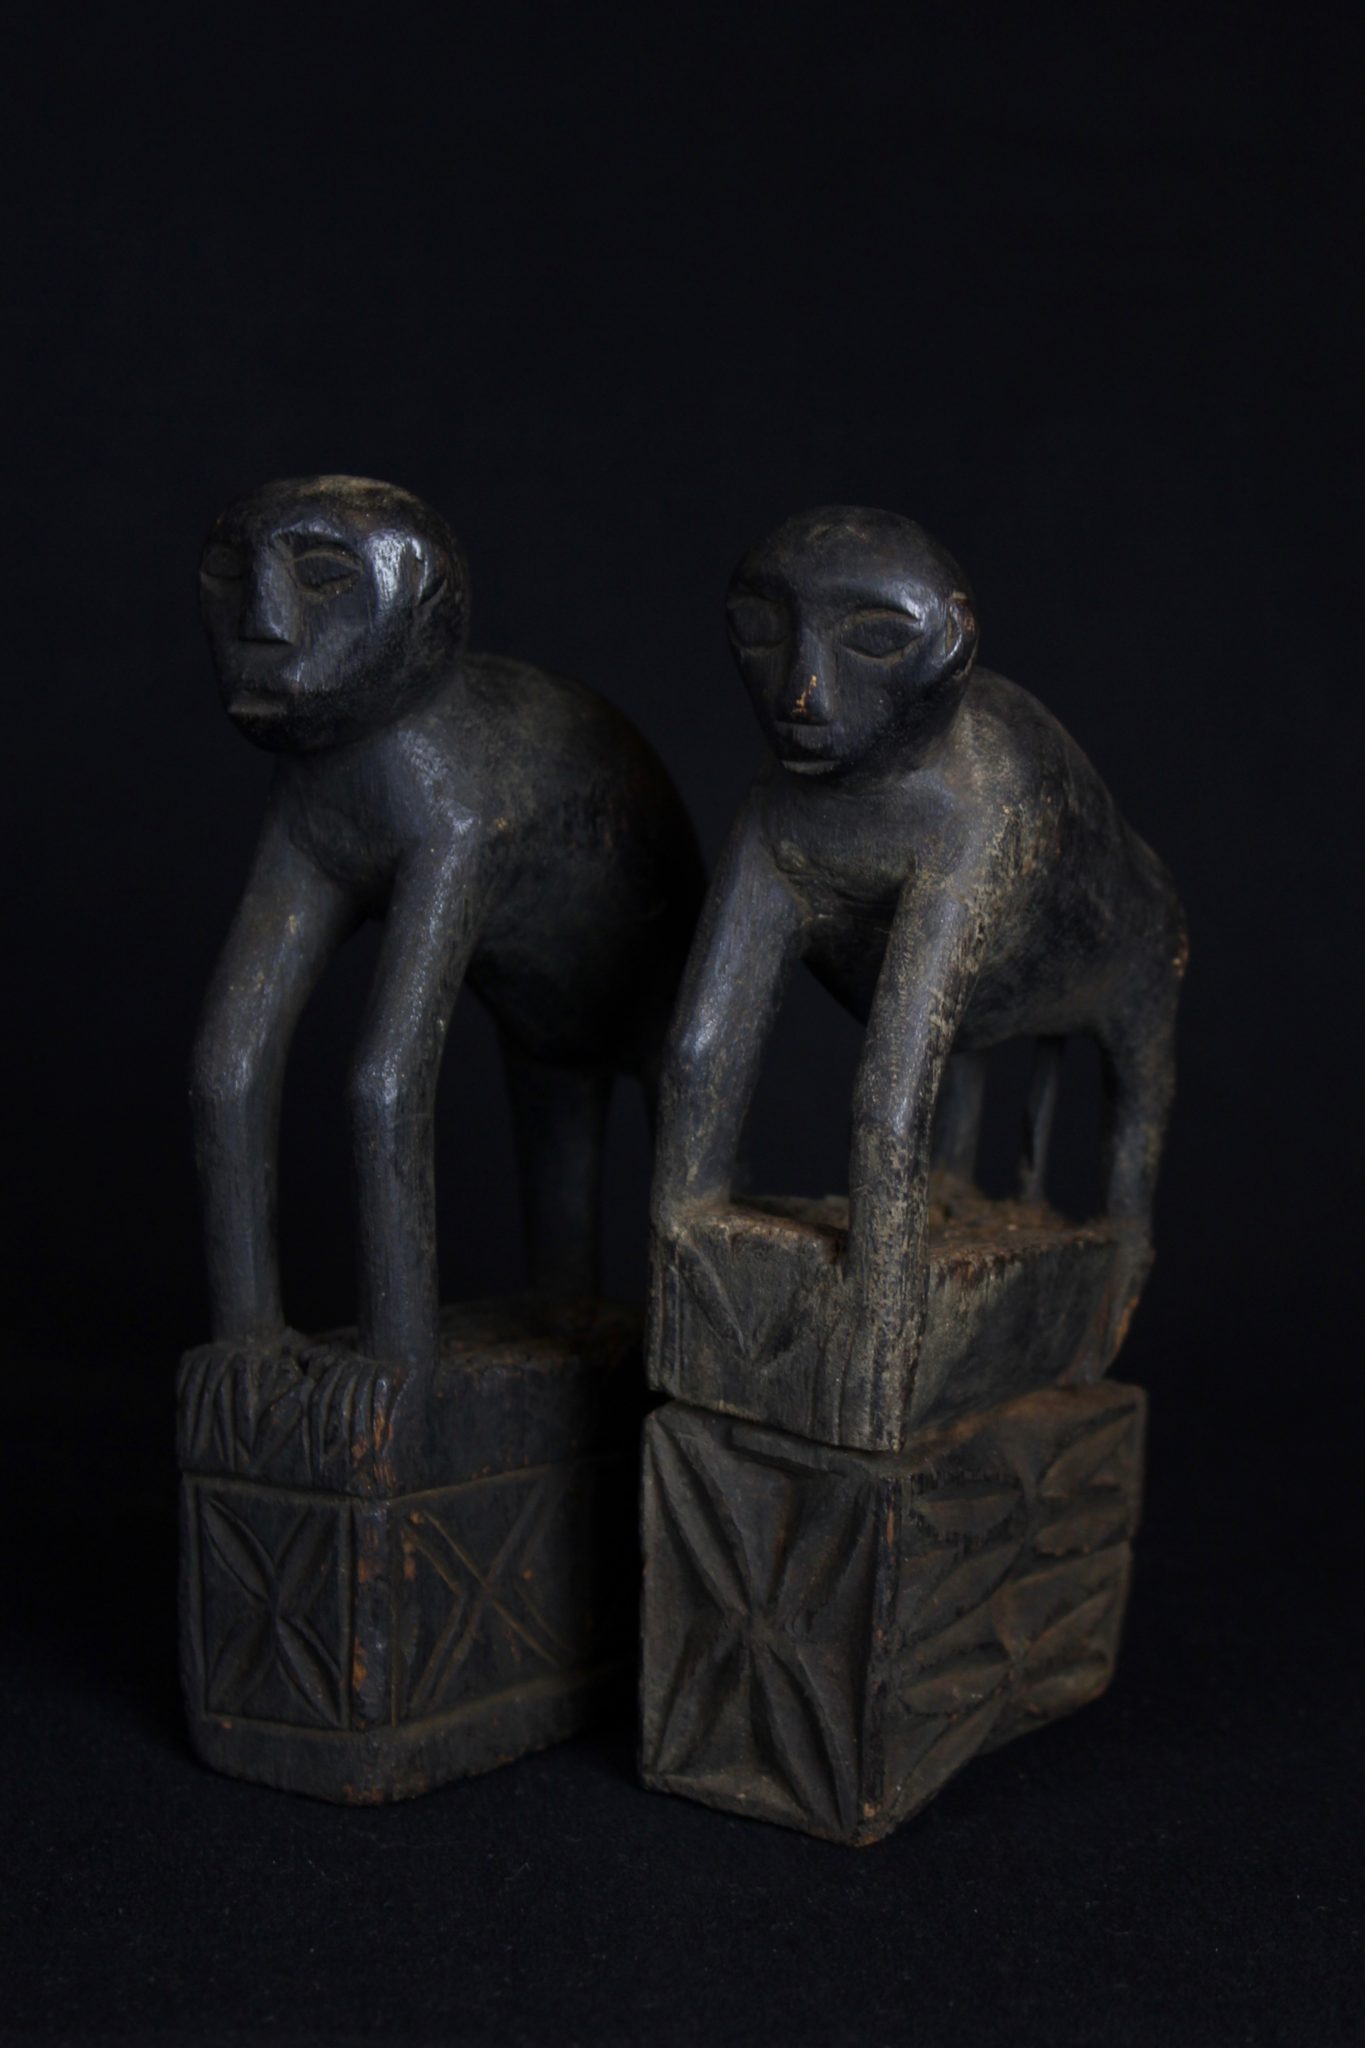 """Shaman Amulet/Talisman Figure (rare), Kalimantan, Borneo, Indonesia, Modang Dayak tribe, Early to mid 20th c, Wood with patina from use and age. Zoomorphic or monkey figure amulet. $650 (sold as pair) Dimensions"""" (left - 7"""" x 1 ½"""" x 3 ¾""""); (right - 7"""" x 1 ½"""" x ¾"""")"""